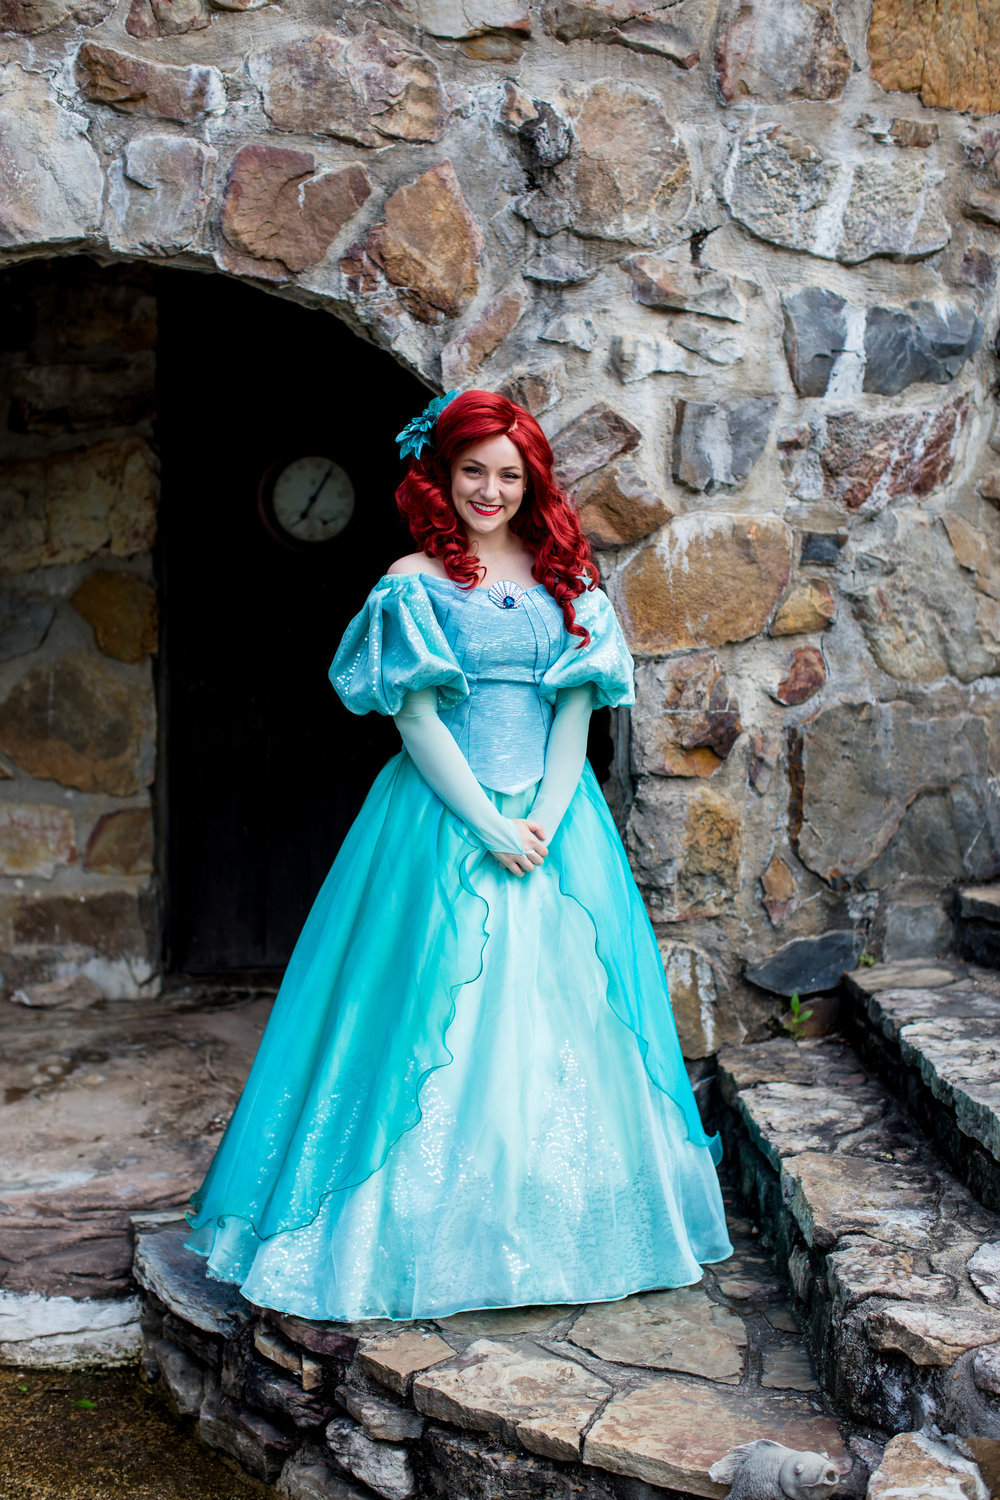 The Little Mermaid (Ballgown Attire)